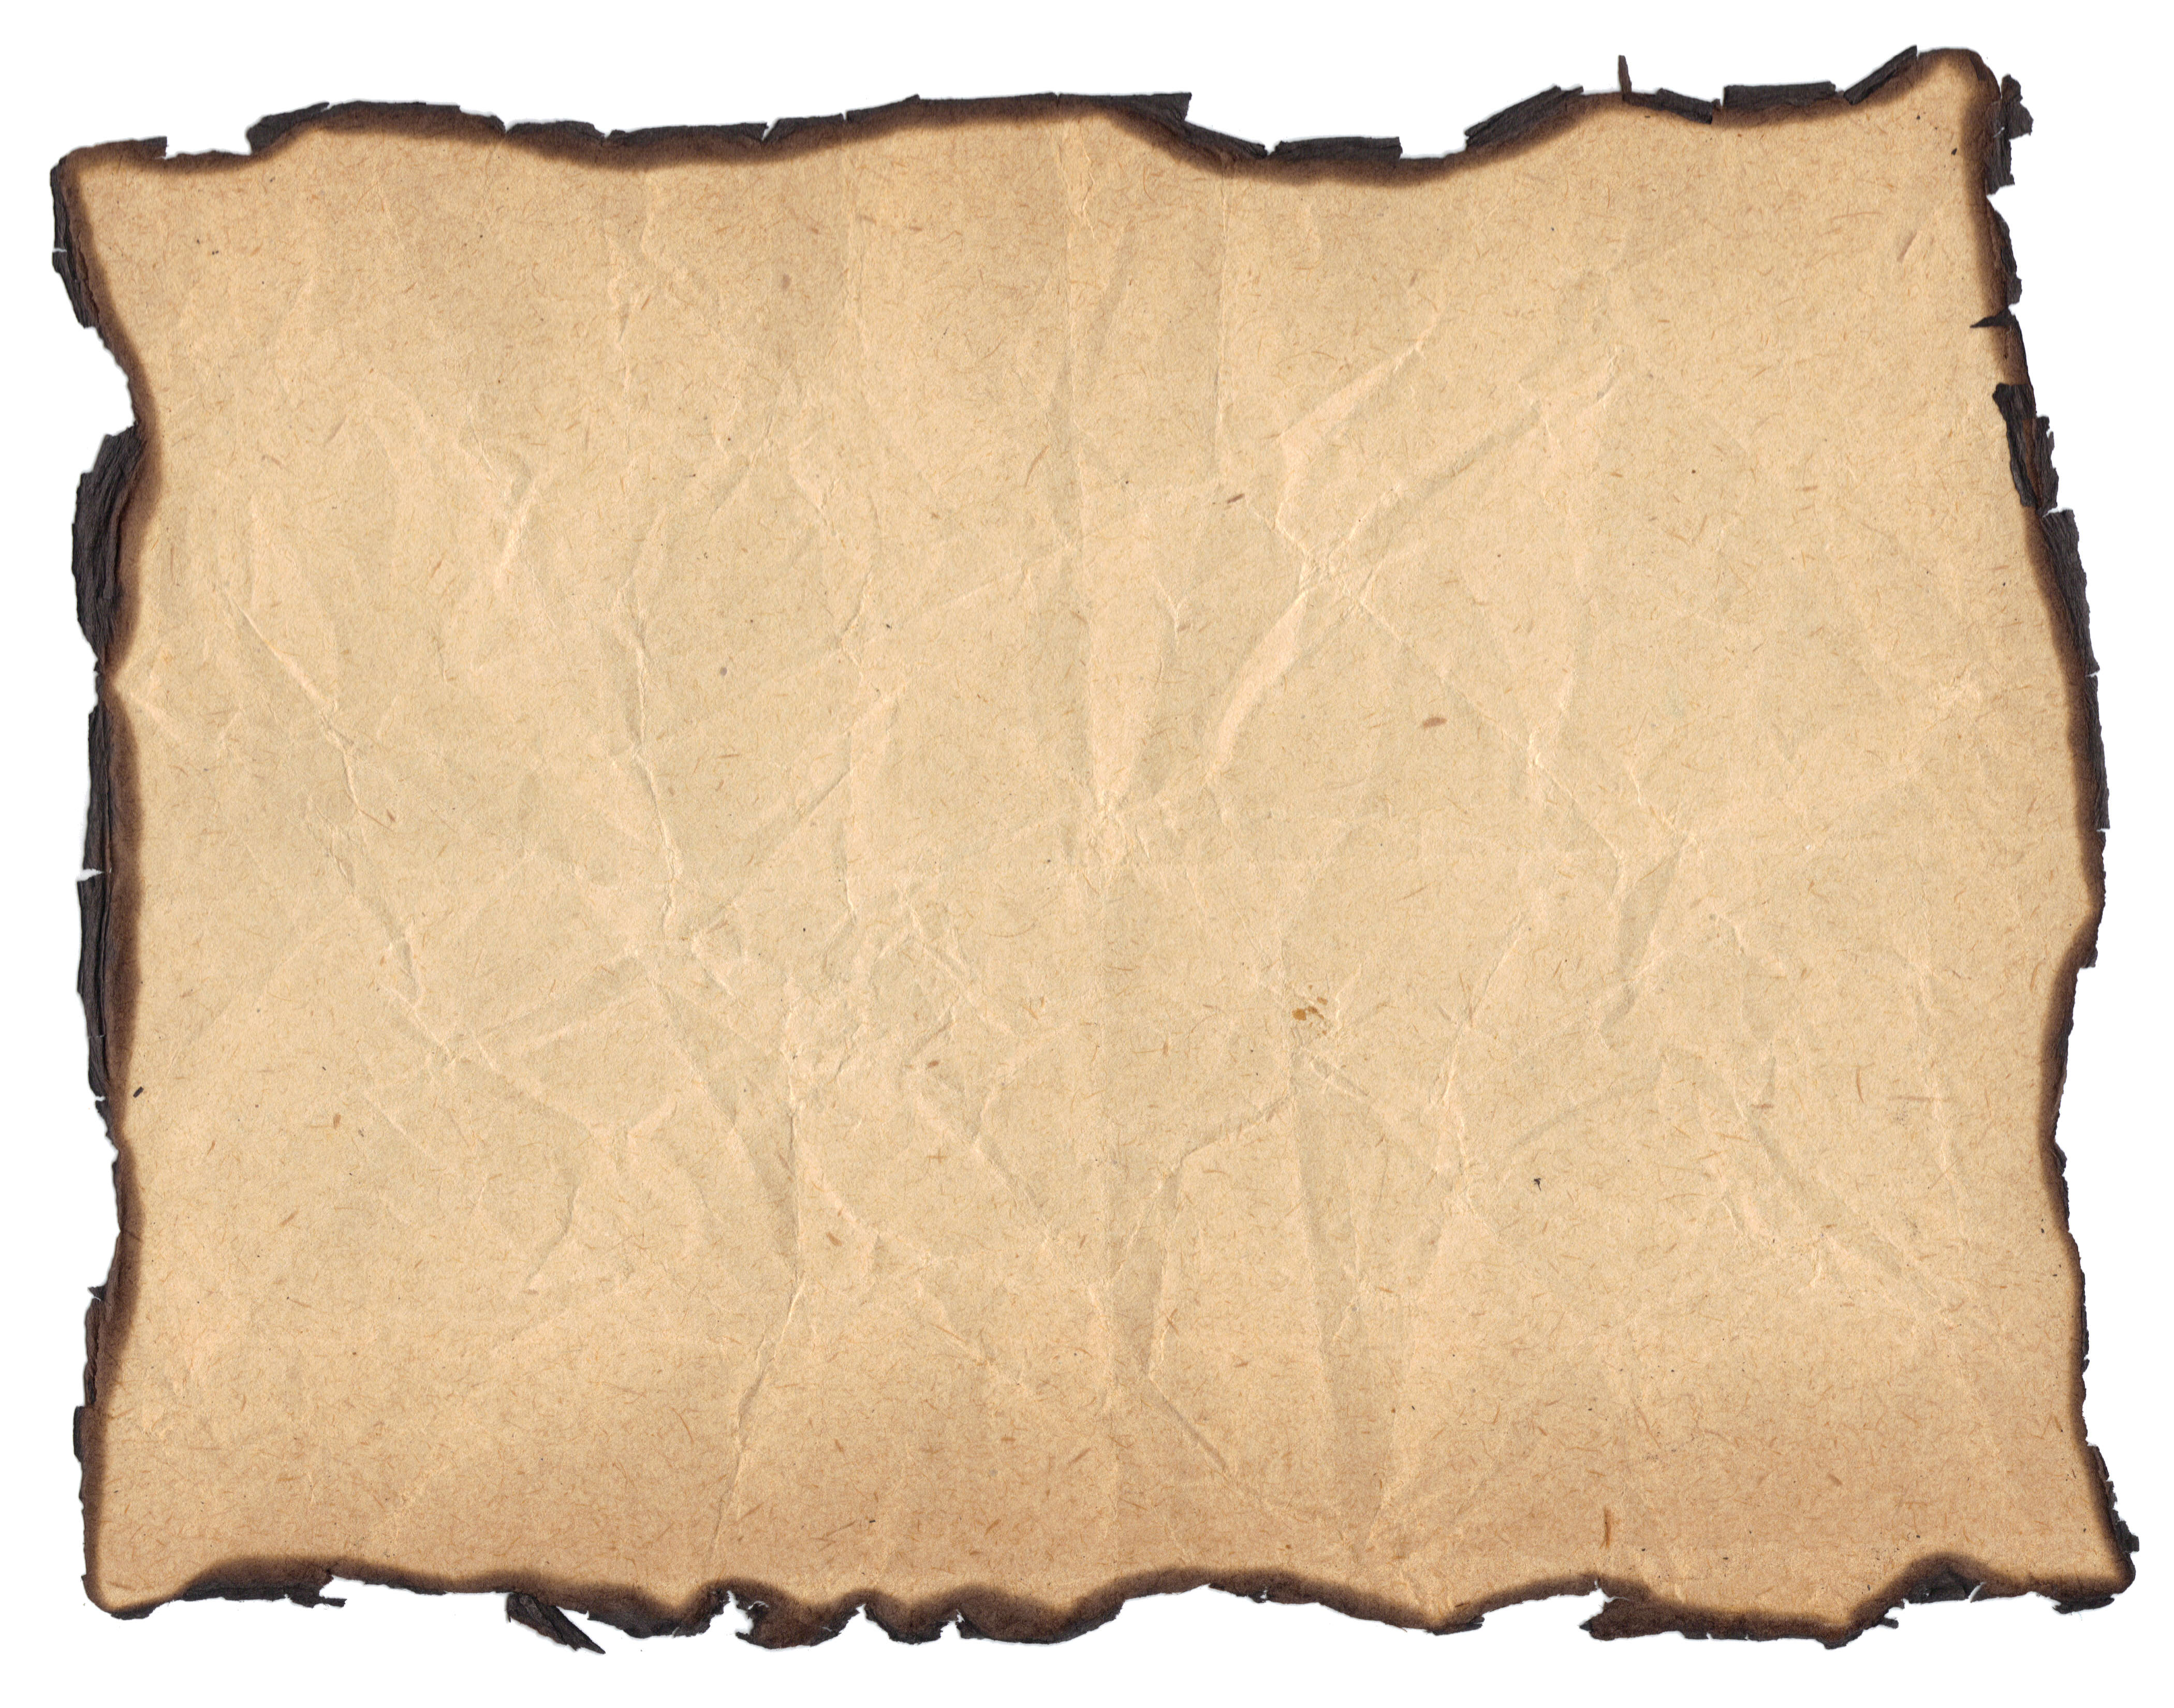 Free Burned Paper Png, Download Free Clip Art, Free Clip Art.